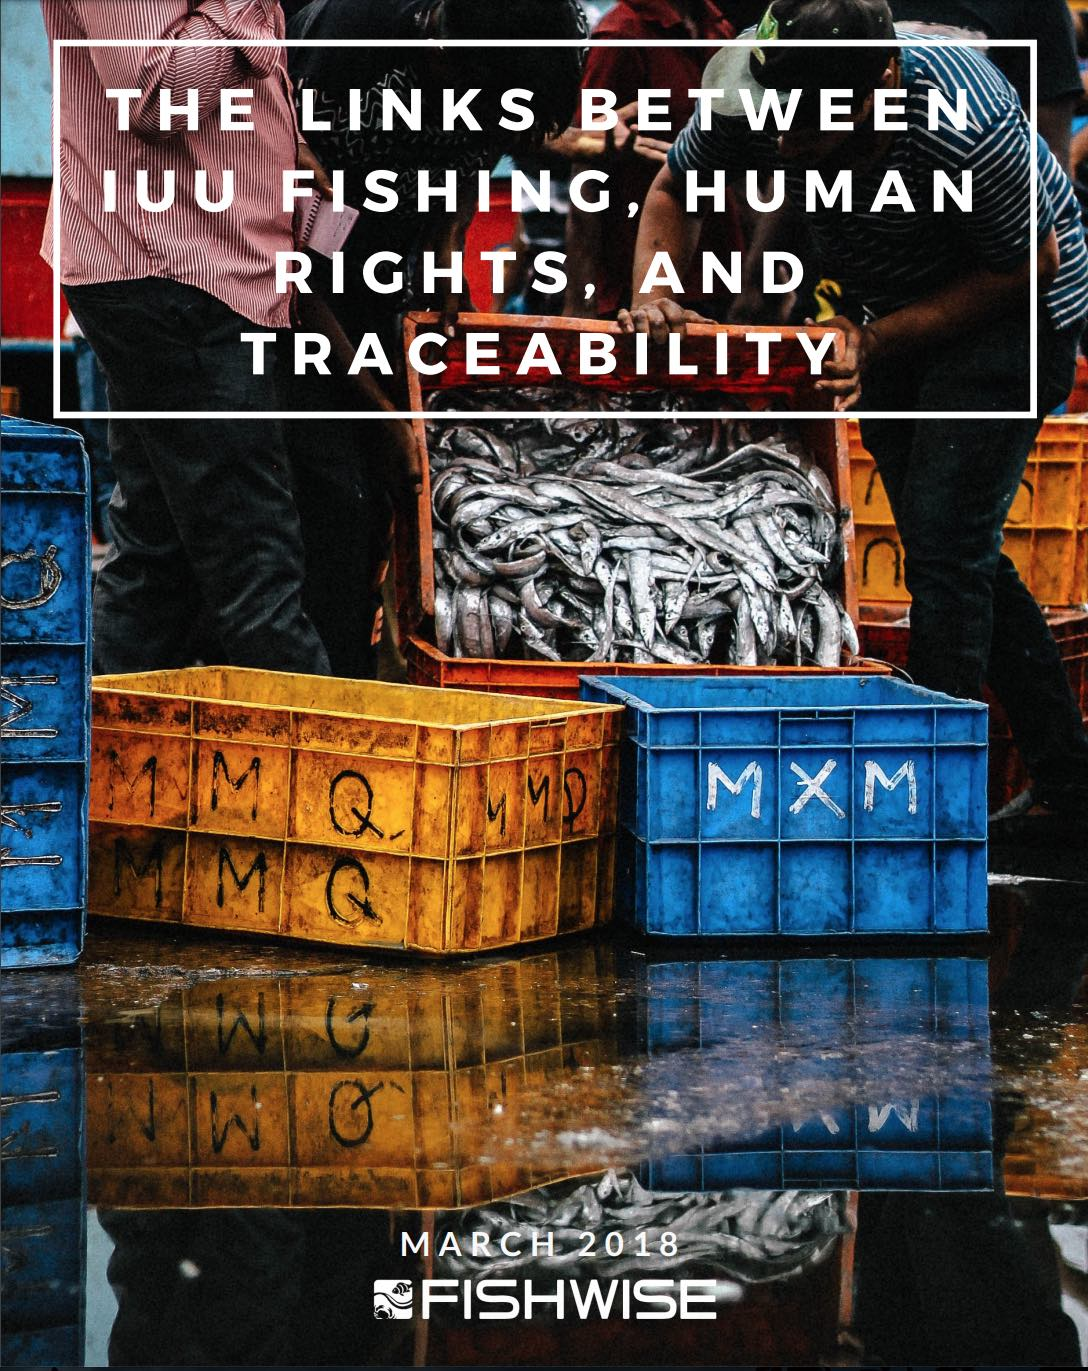 The Links Between IUU Fishing, Human Rights, and Traceability